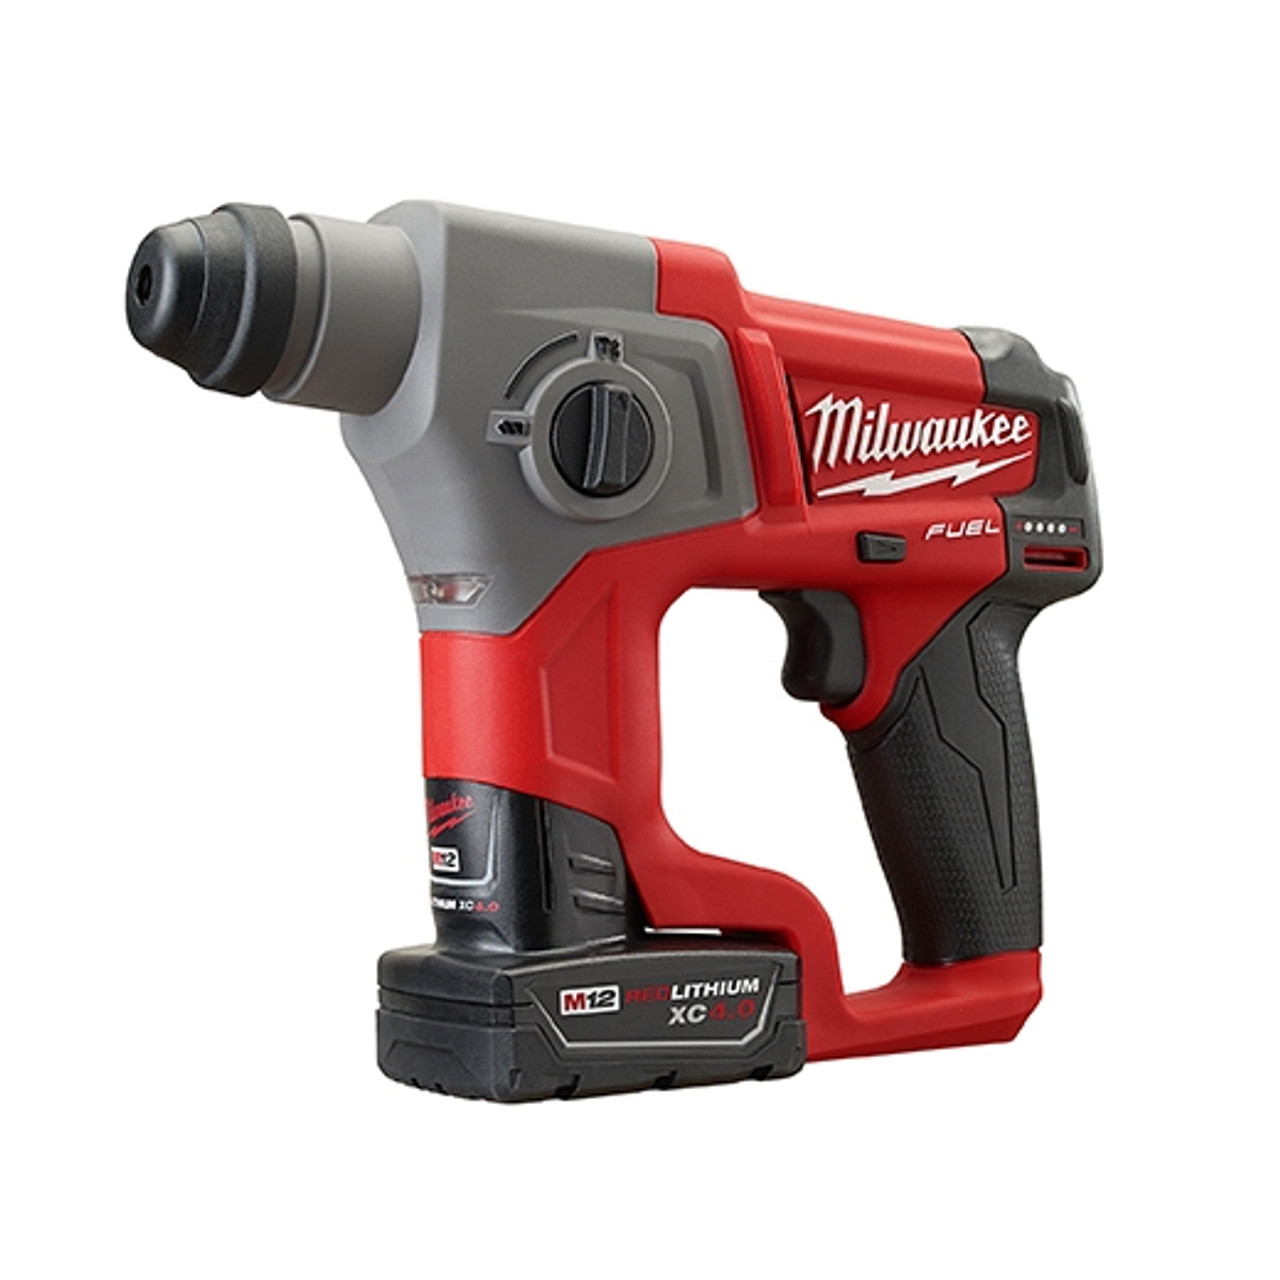 Milwaukee 2416-22XC M12 FUEL 5/8 in. SDS Plus Rotary Hammer Kit